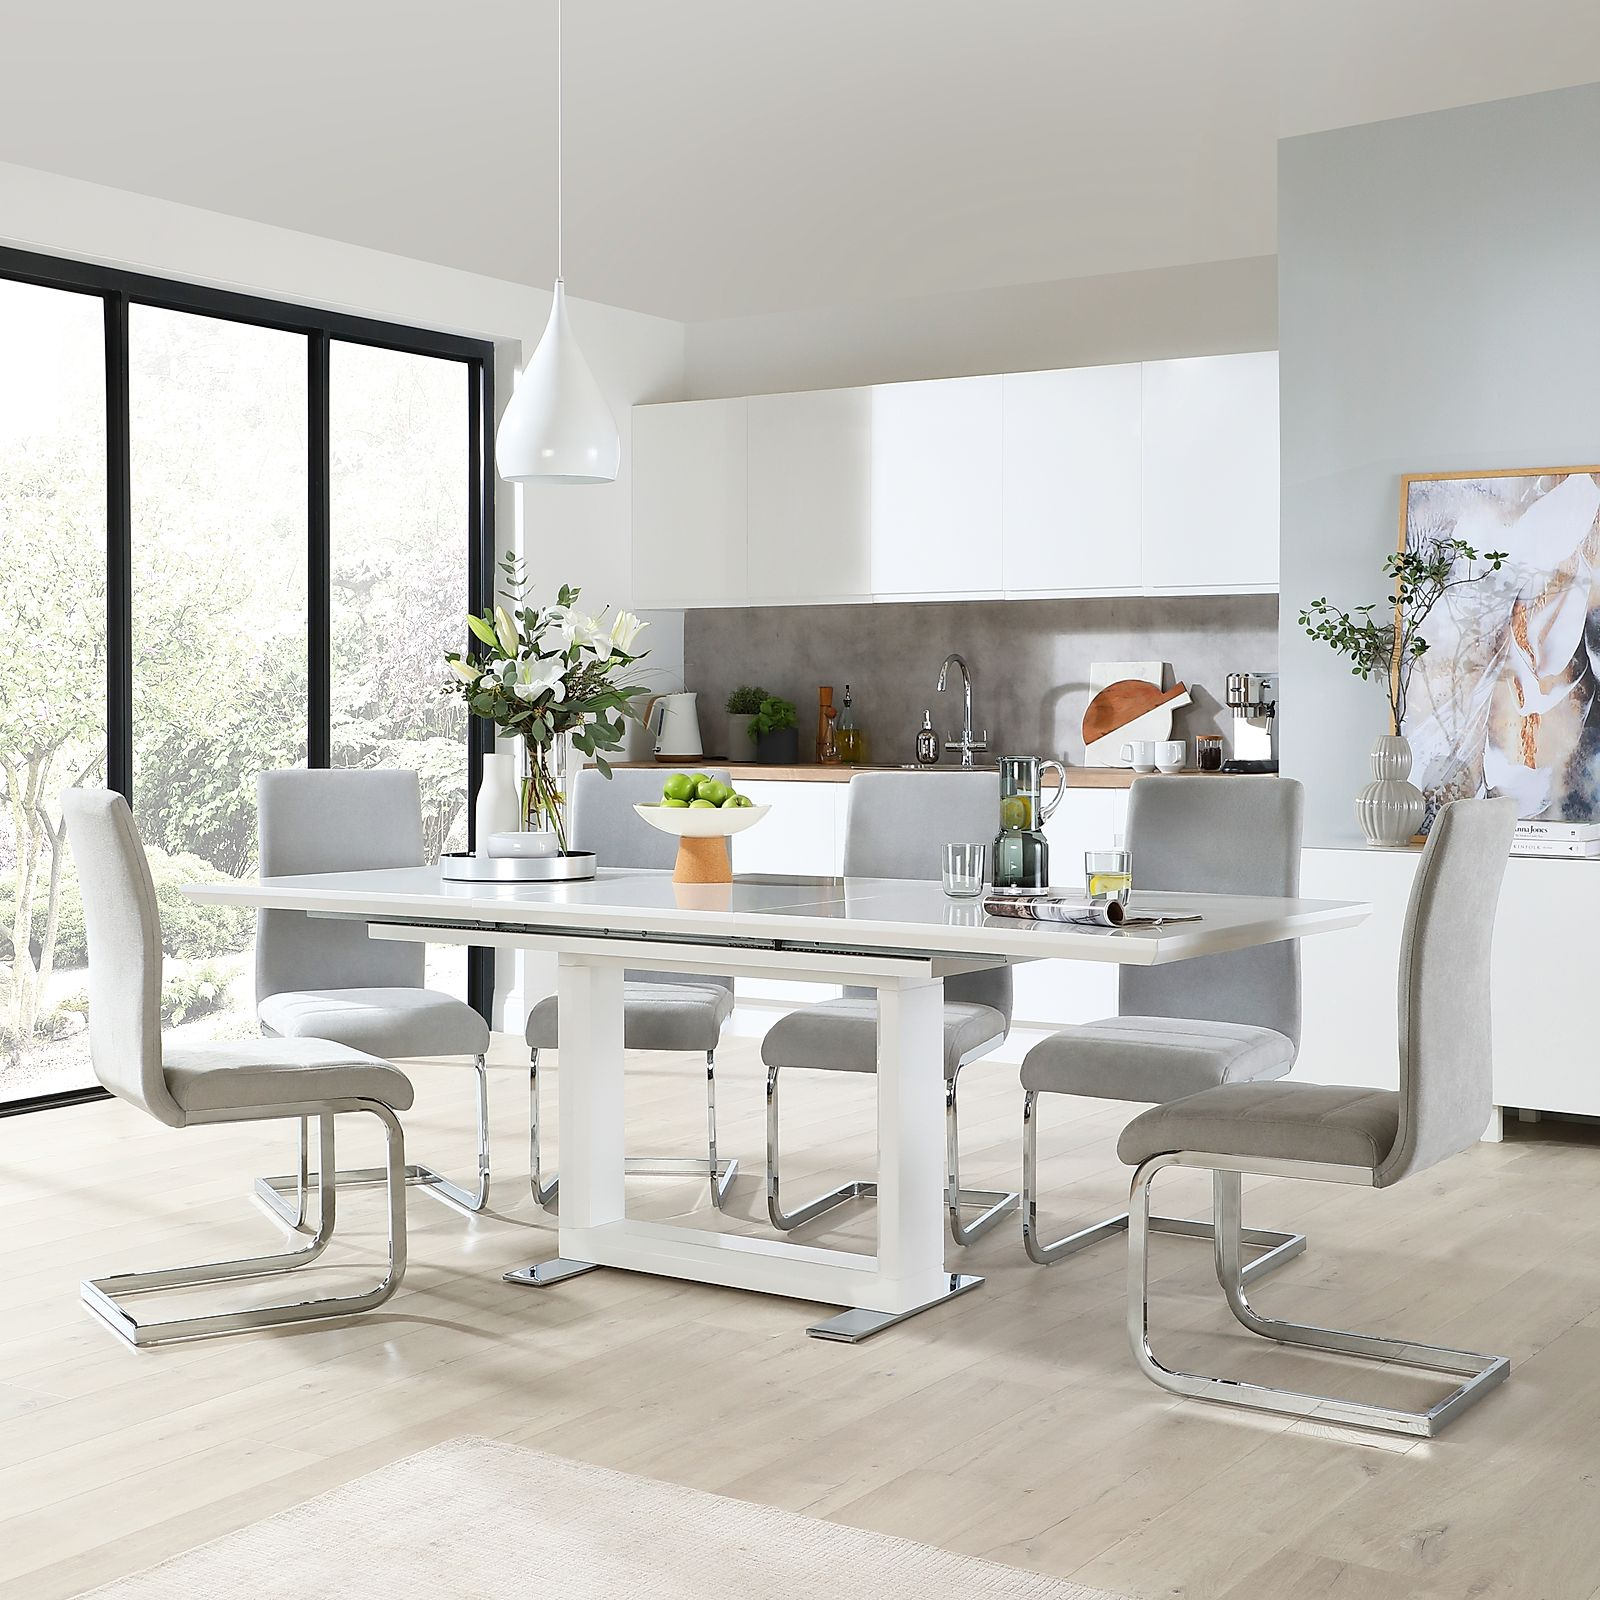 Tokyo White High Gloss Extending Dining Table with 4 Perth ...